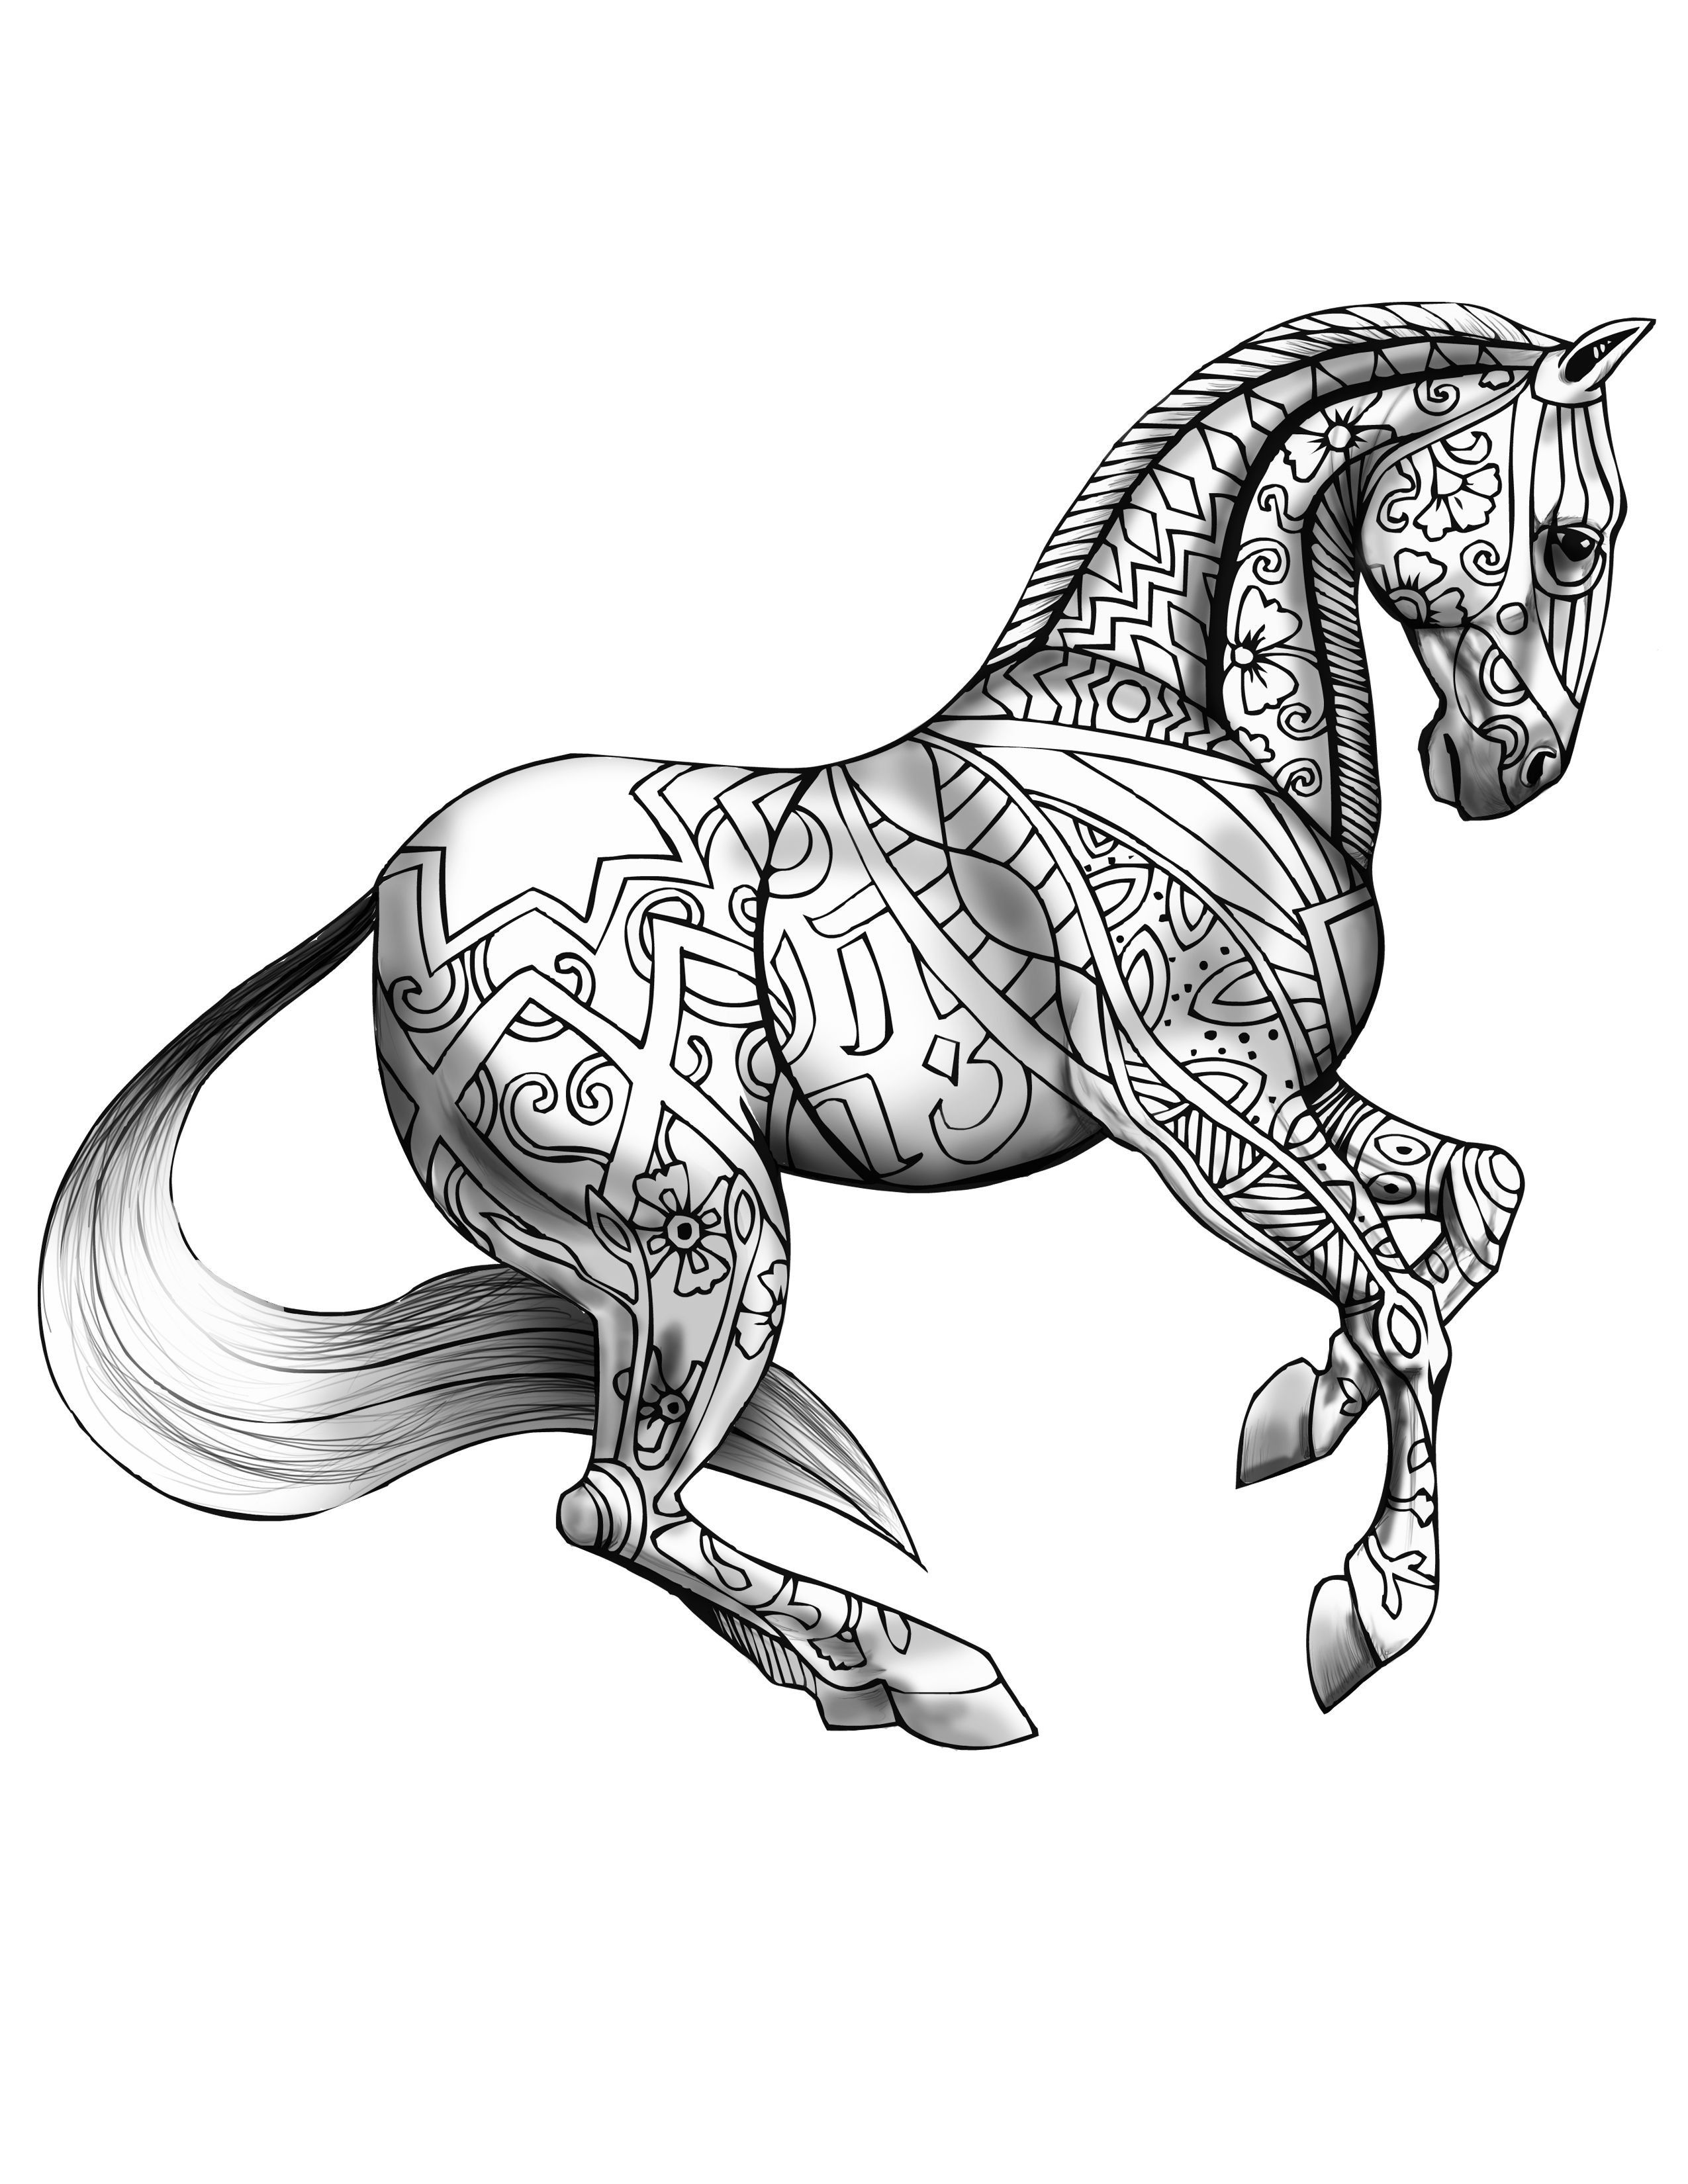 coloring page horse coloring pages of horses printable free coloring sheets horse page coloring 1 1